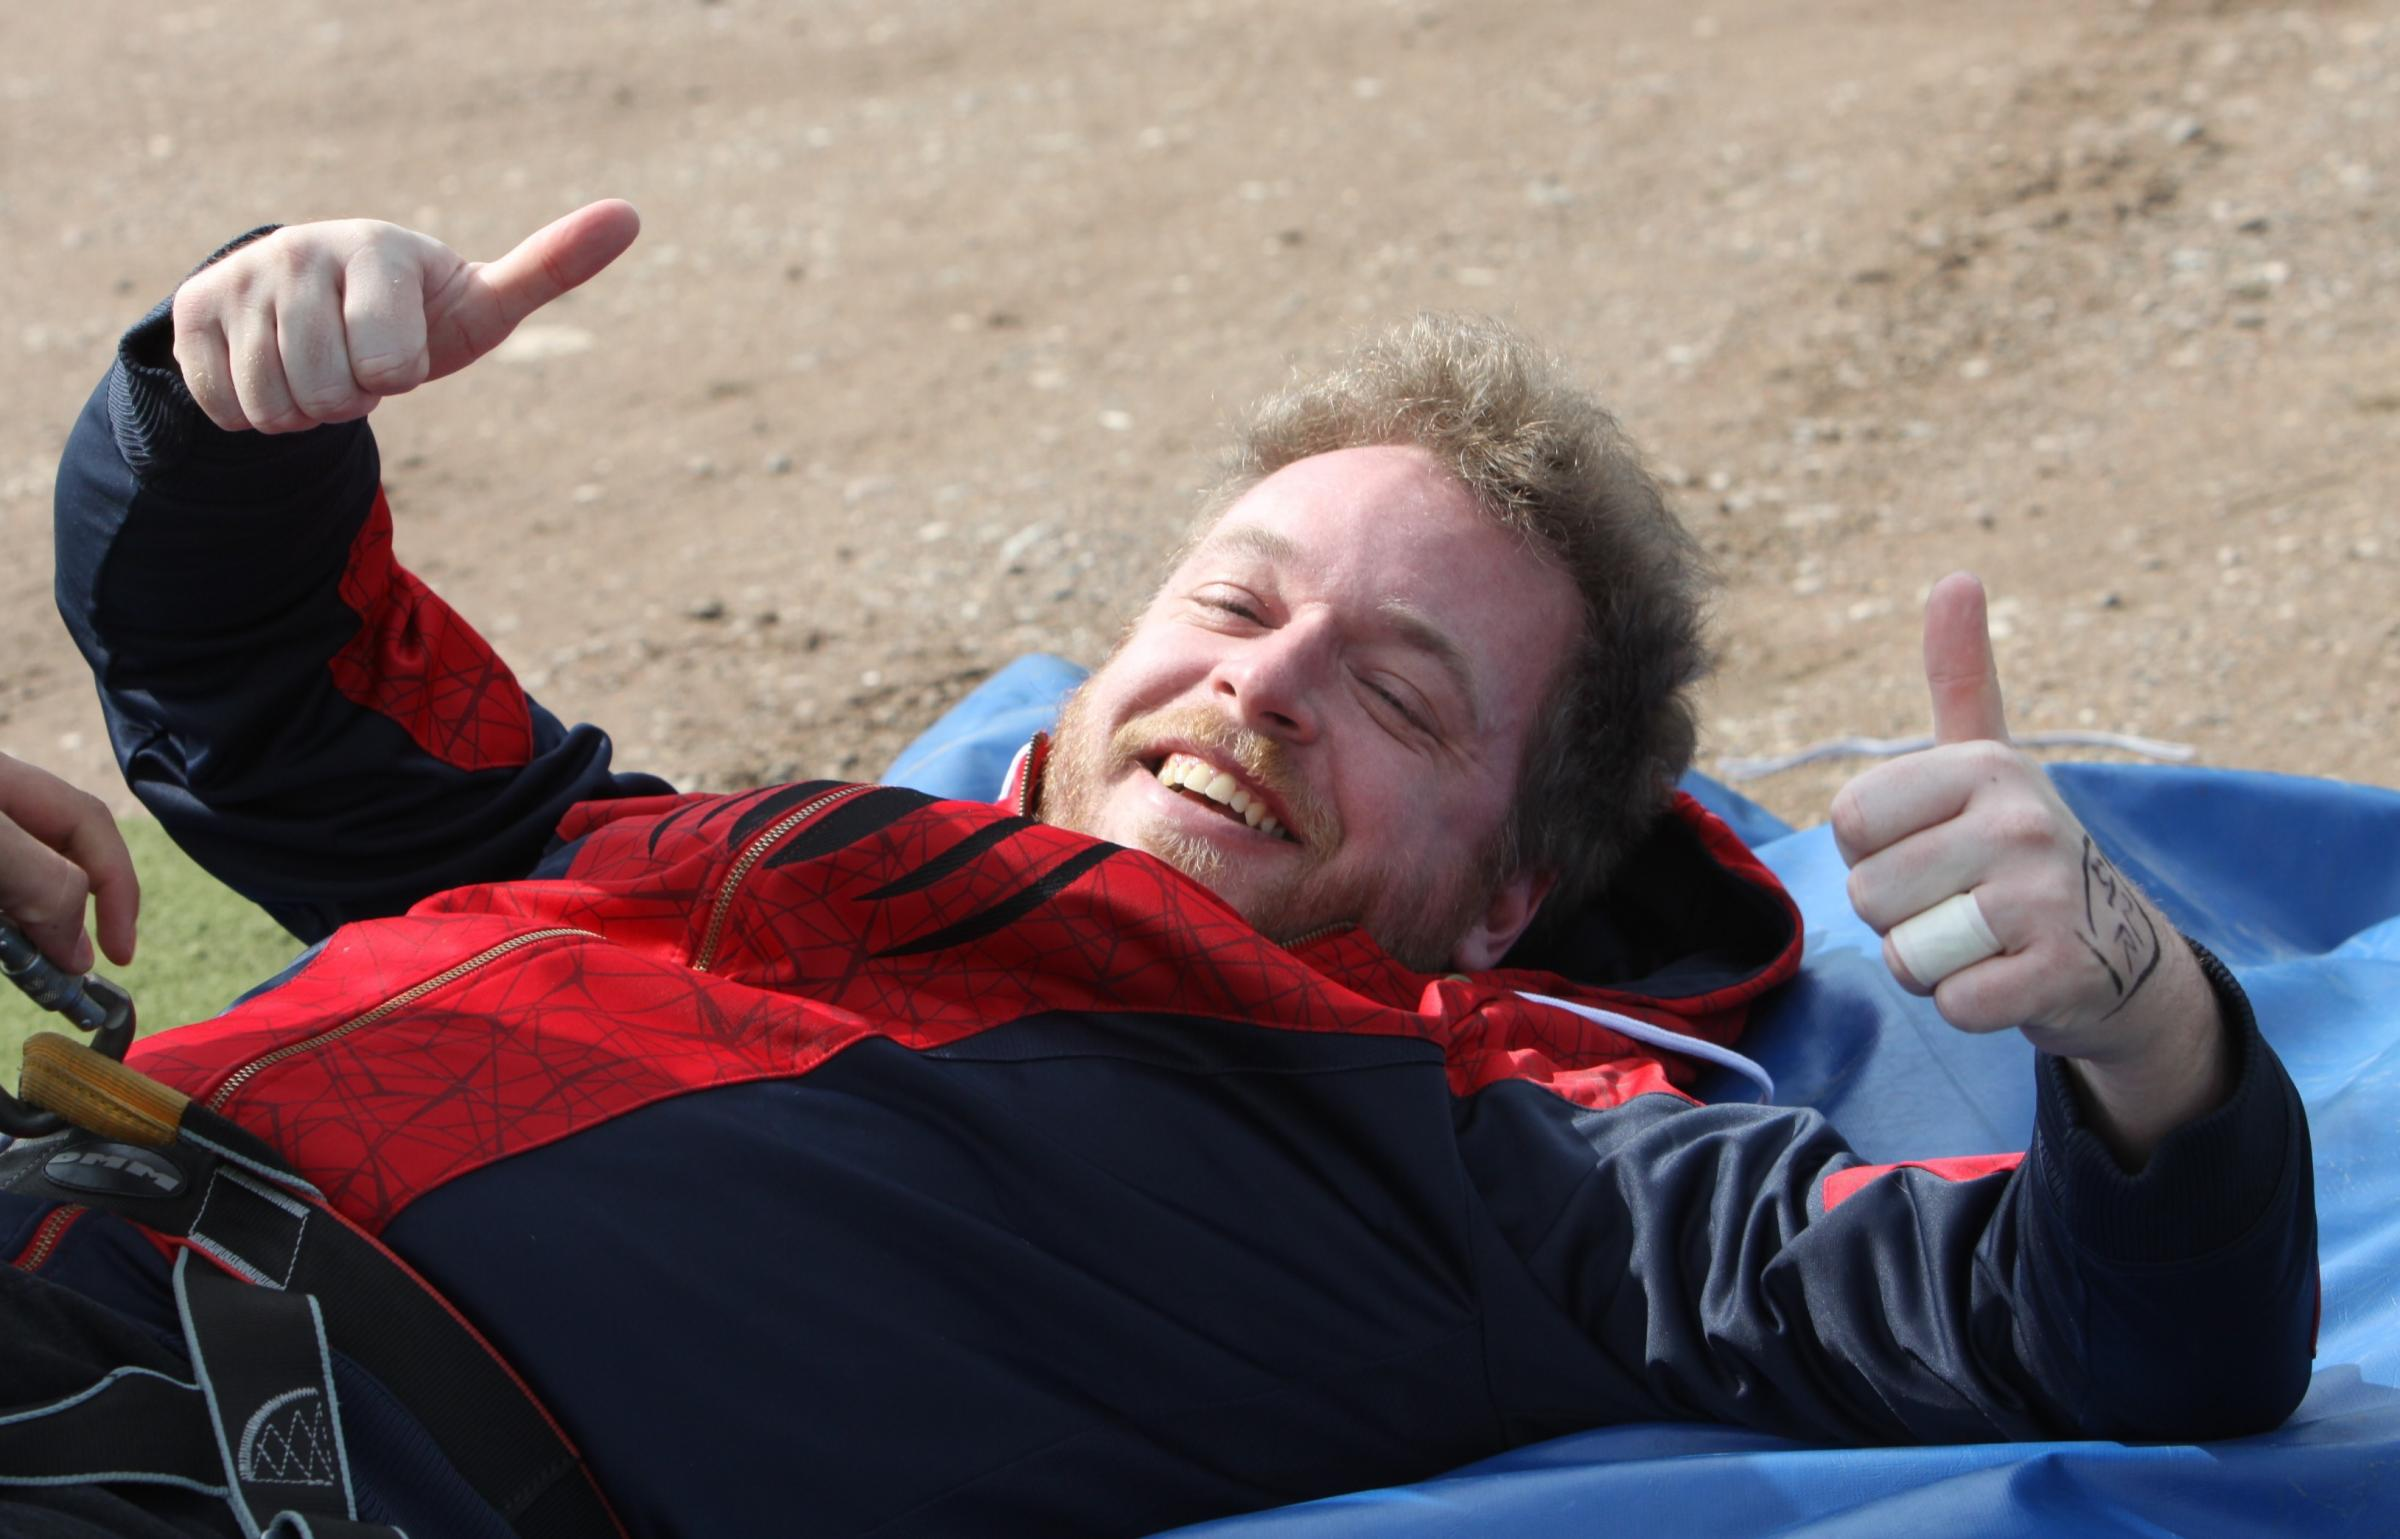 Leo Chell gives the thumbs up after his fundraising bungee jump.